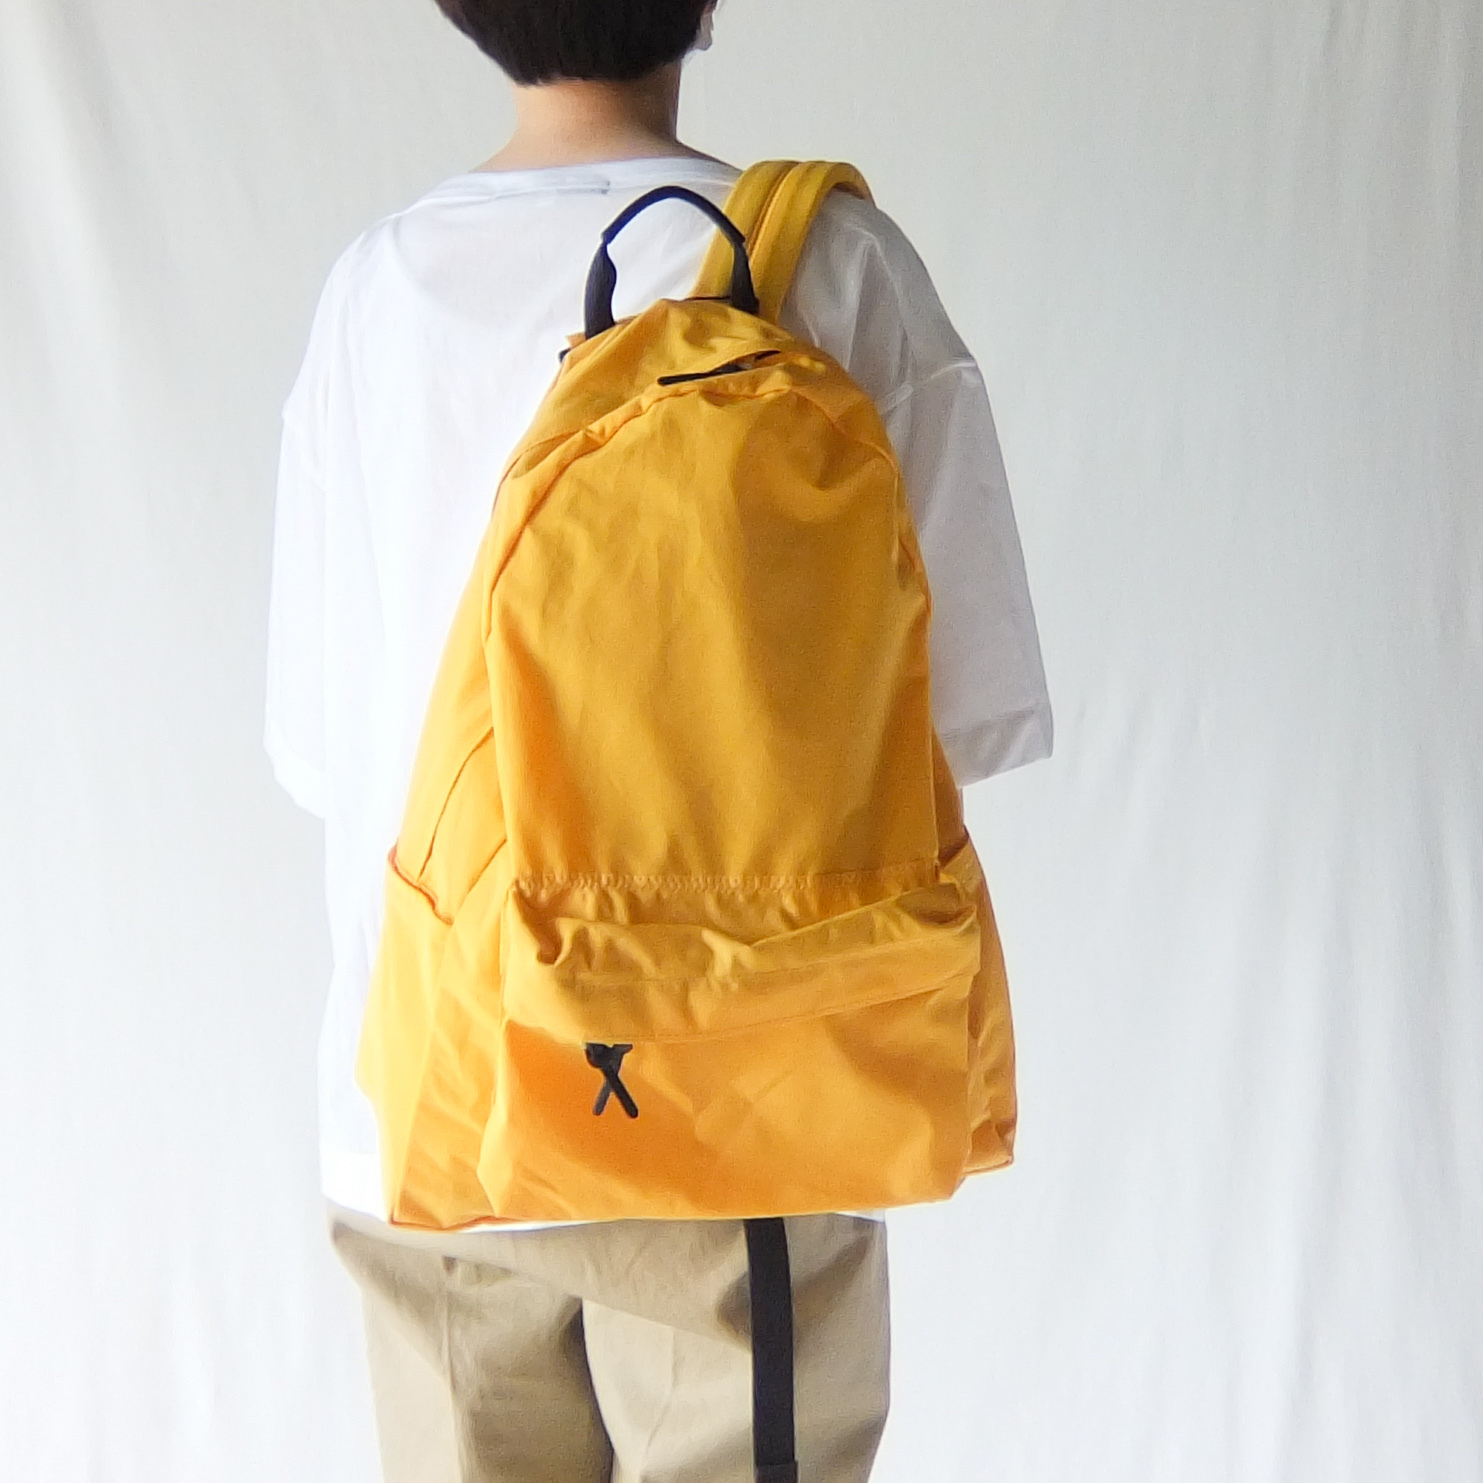 STANDARD SUPPLY - SIMPLICITY COMMUTE DAYPACK (22L) コミュートデイパック - Yellow